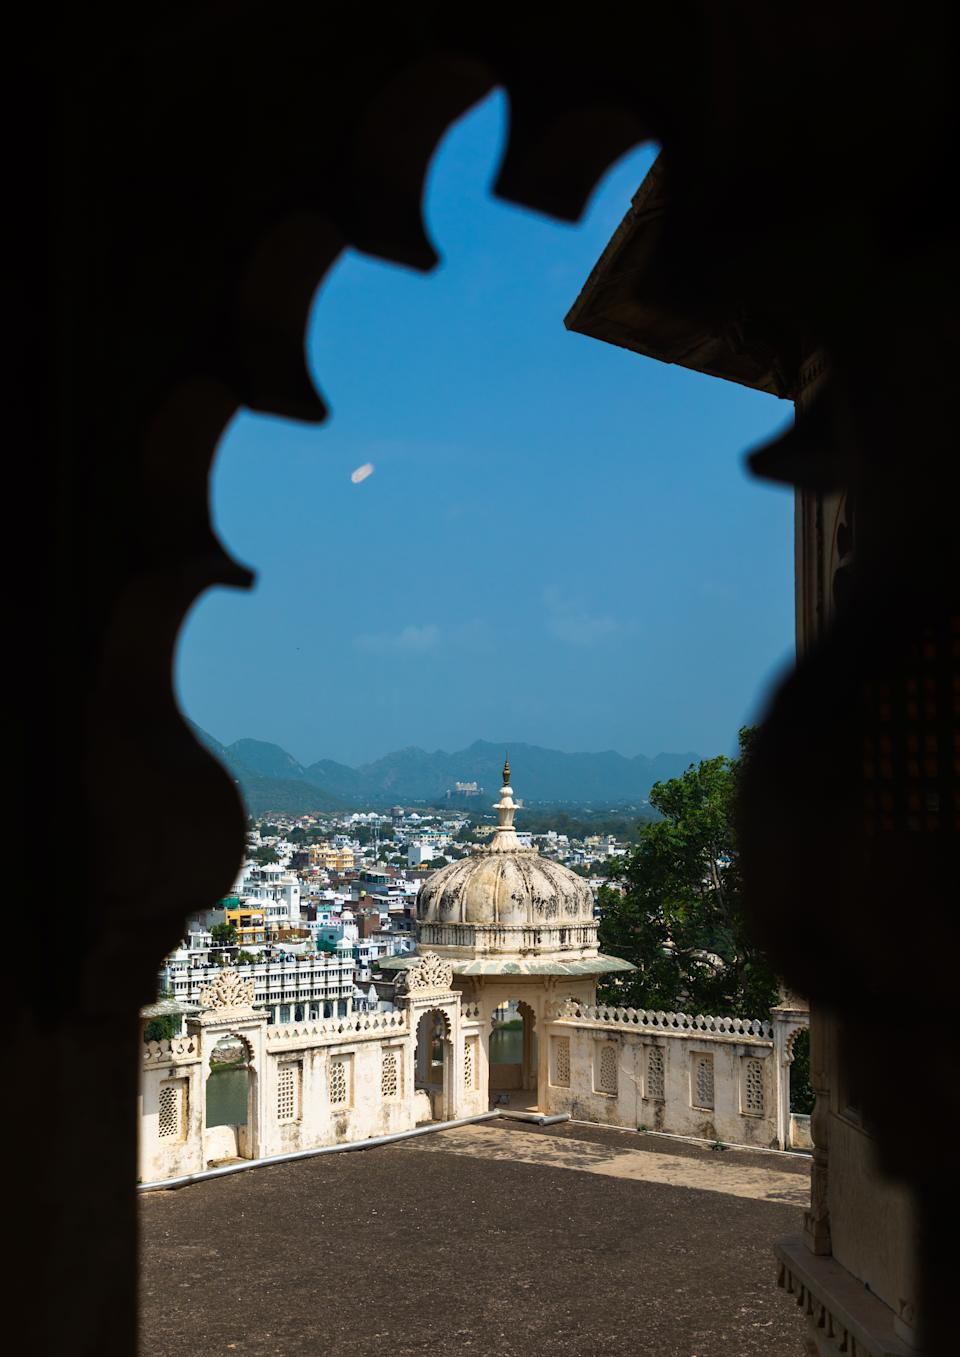 The palace is located on the east bank of Lake Pichola and has several palaces built within its complex.